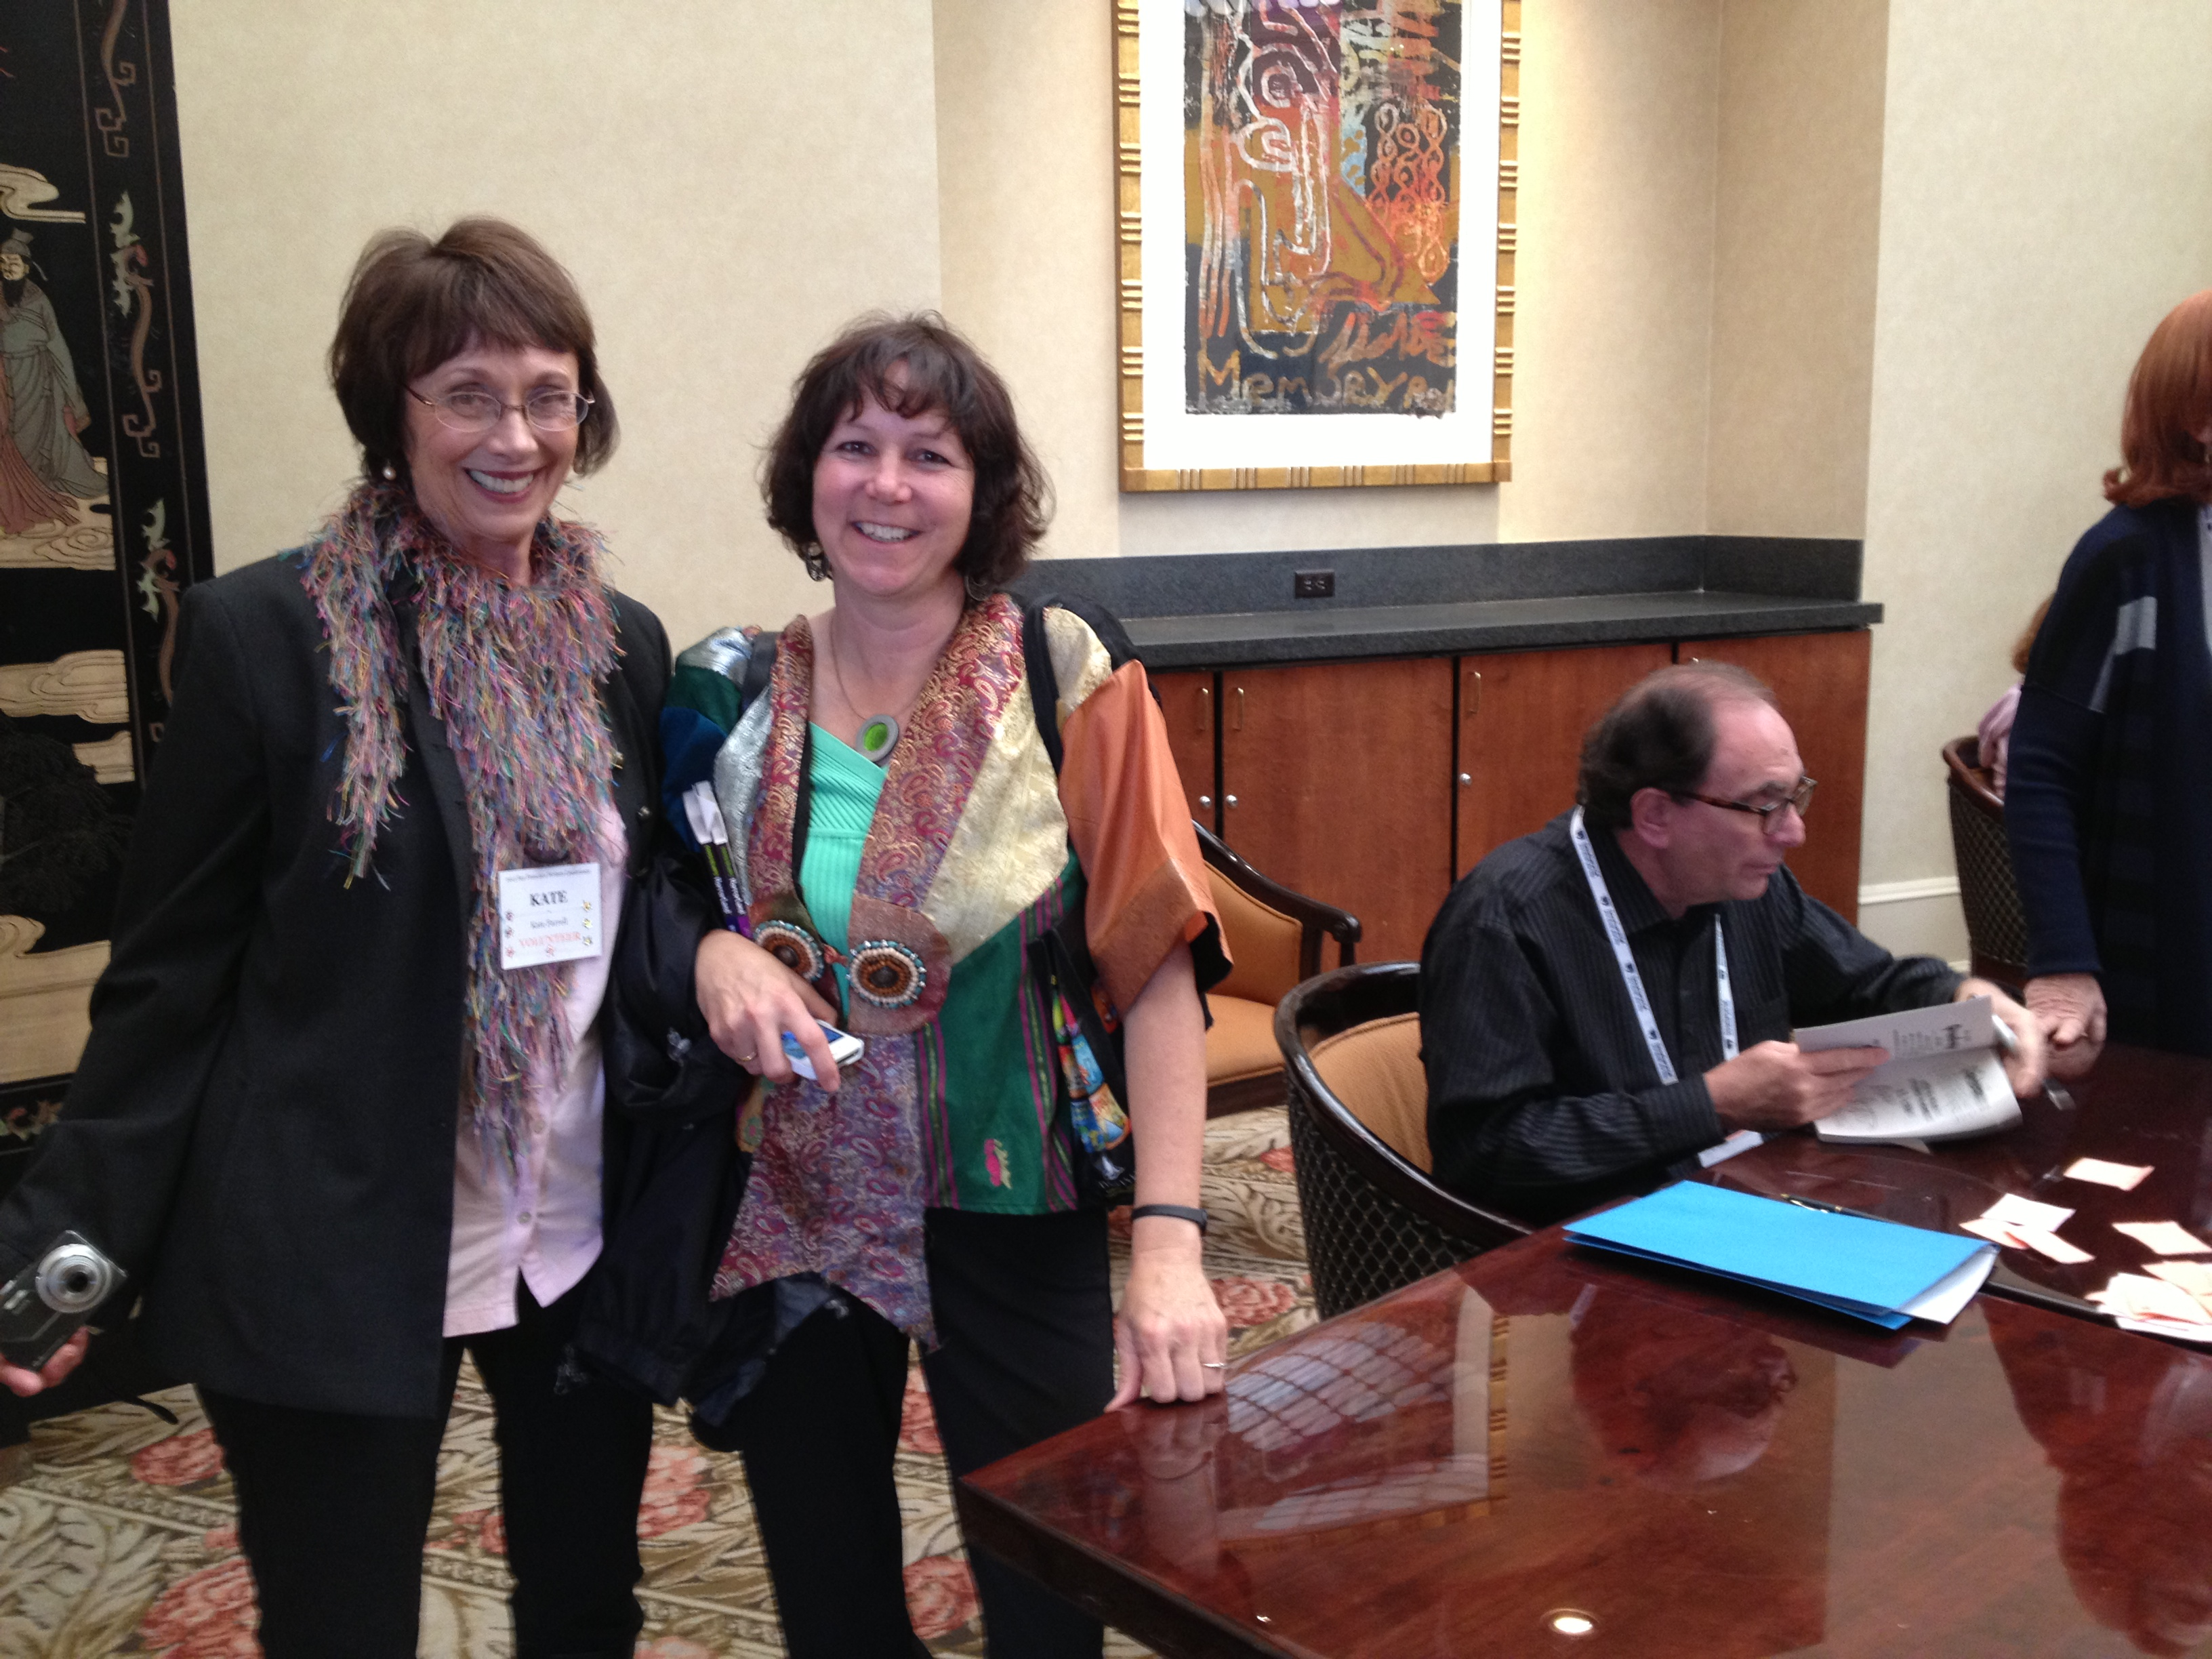 R.L. Stine Signs Books at the San Francisco Writers Conference